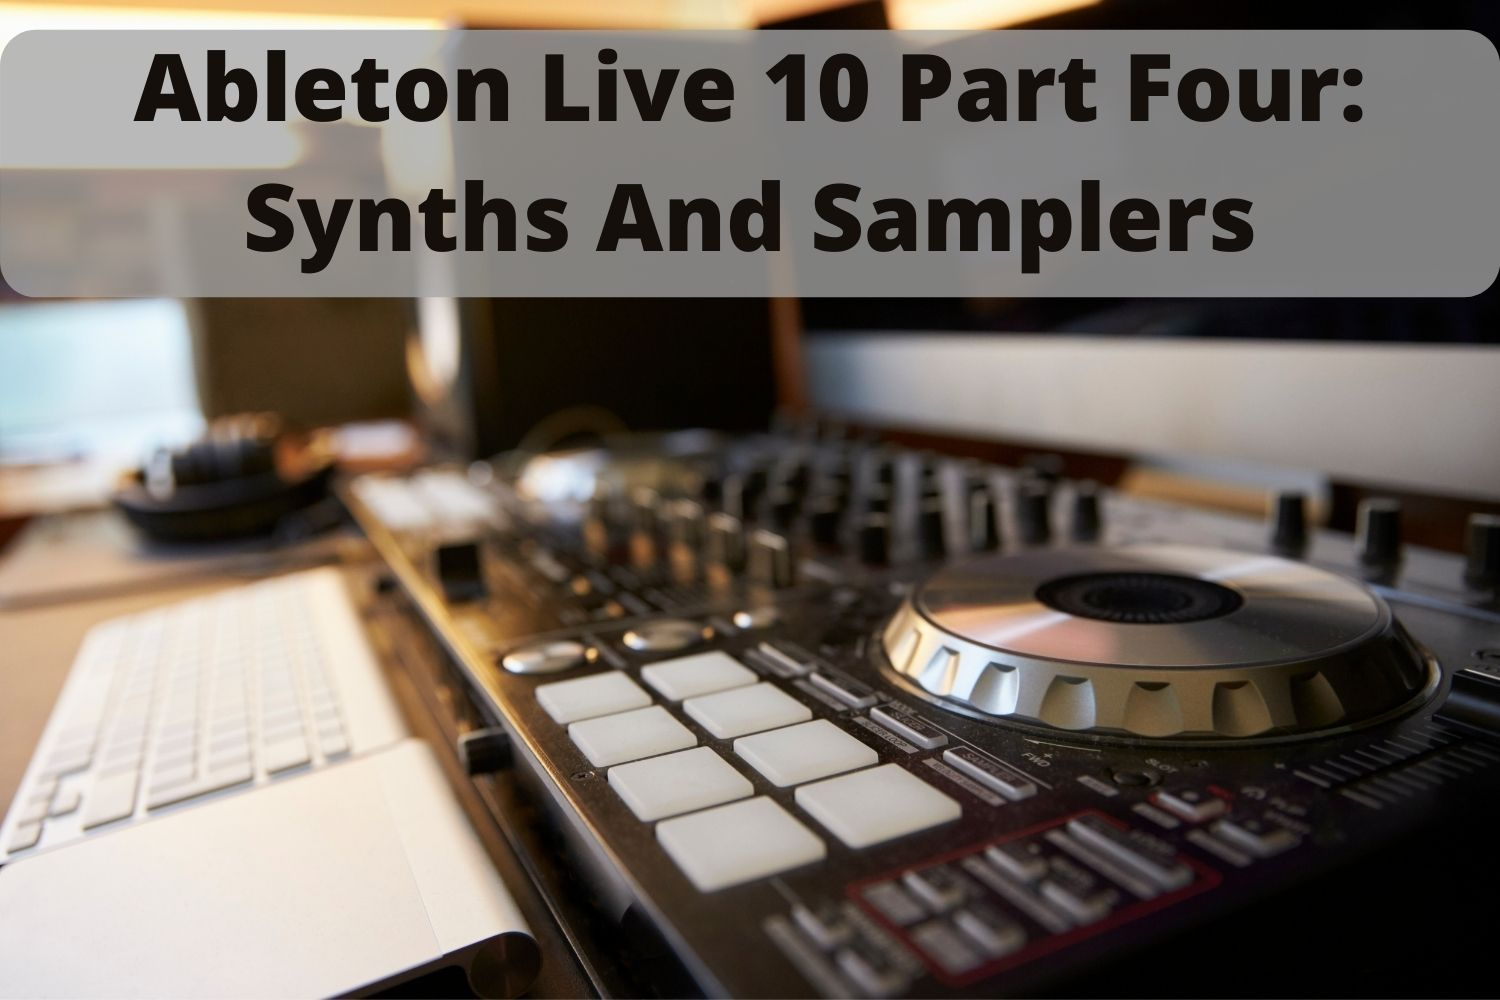 Learn Ableton Live 10 Suite through tutorials, tracks, and more. The fourth part.